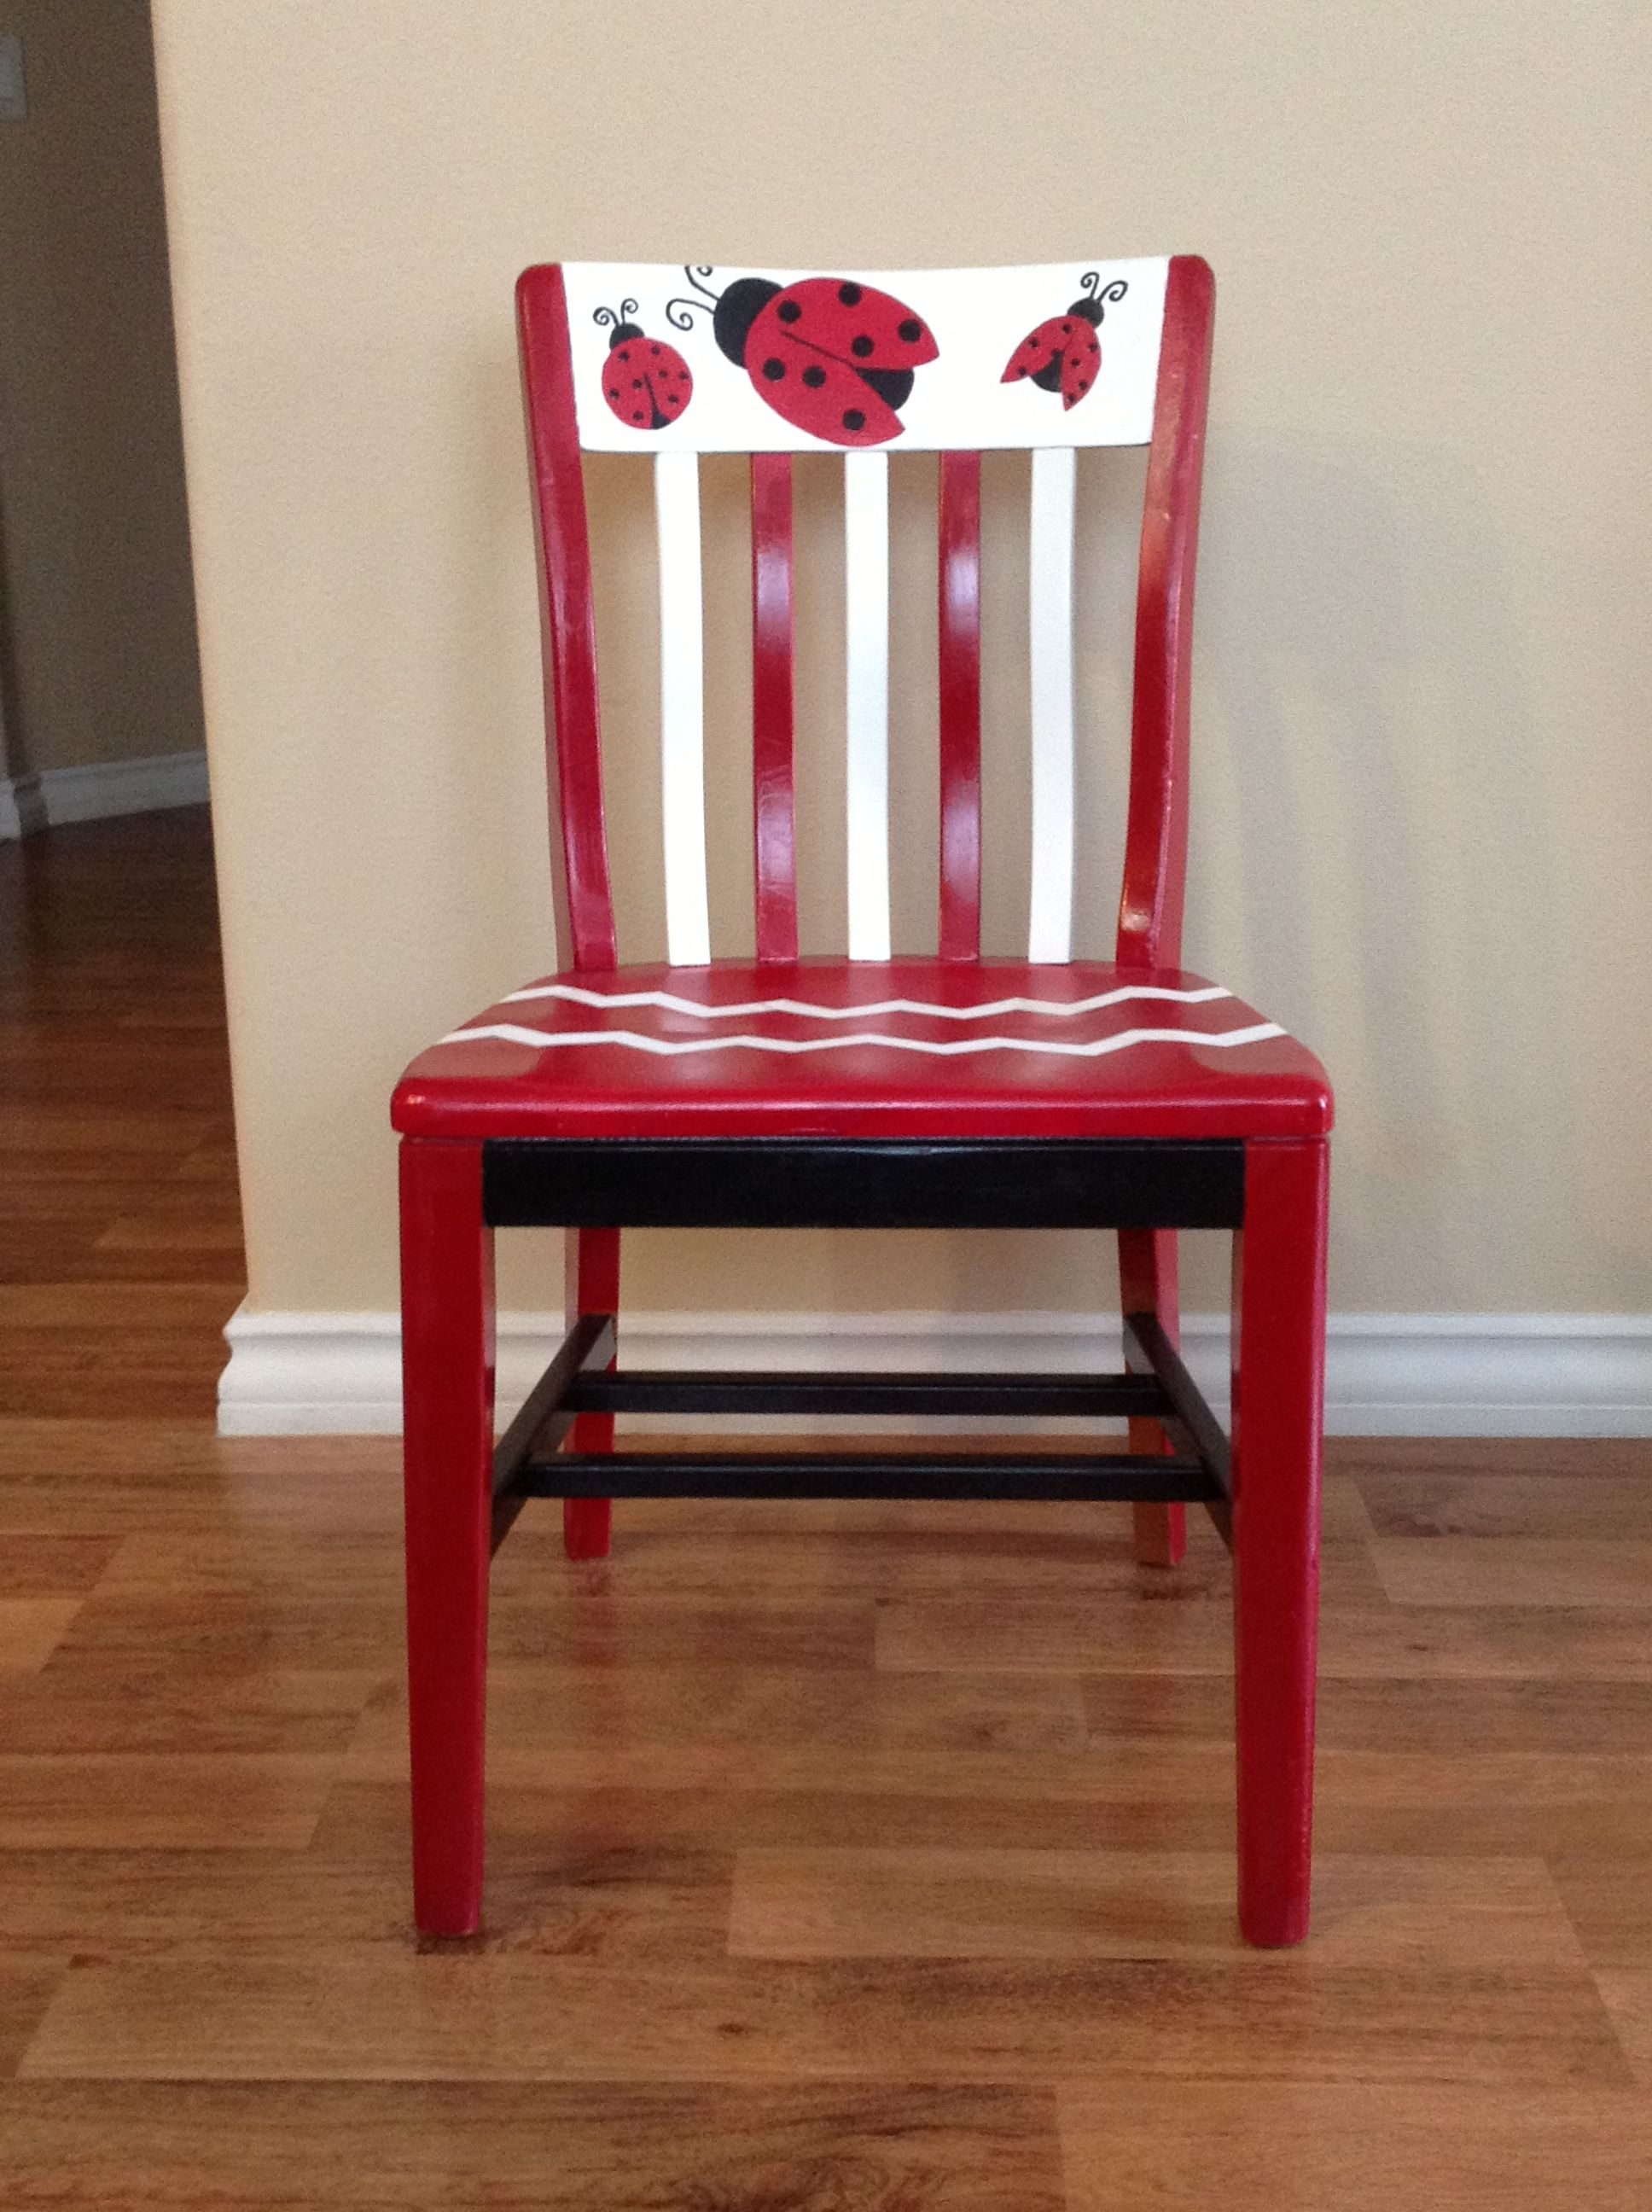 Teacher Rocking Chair Arm Covers For Chairs My Ladybug Themed Classroom Things I